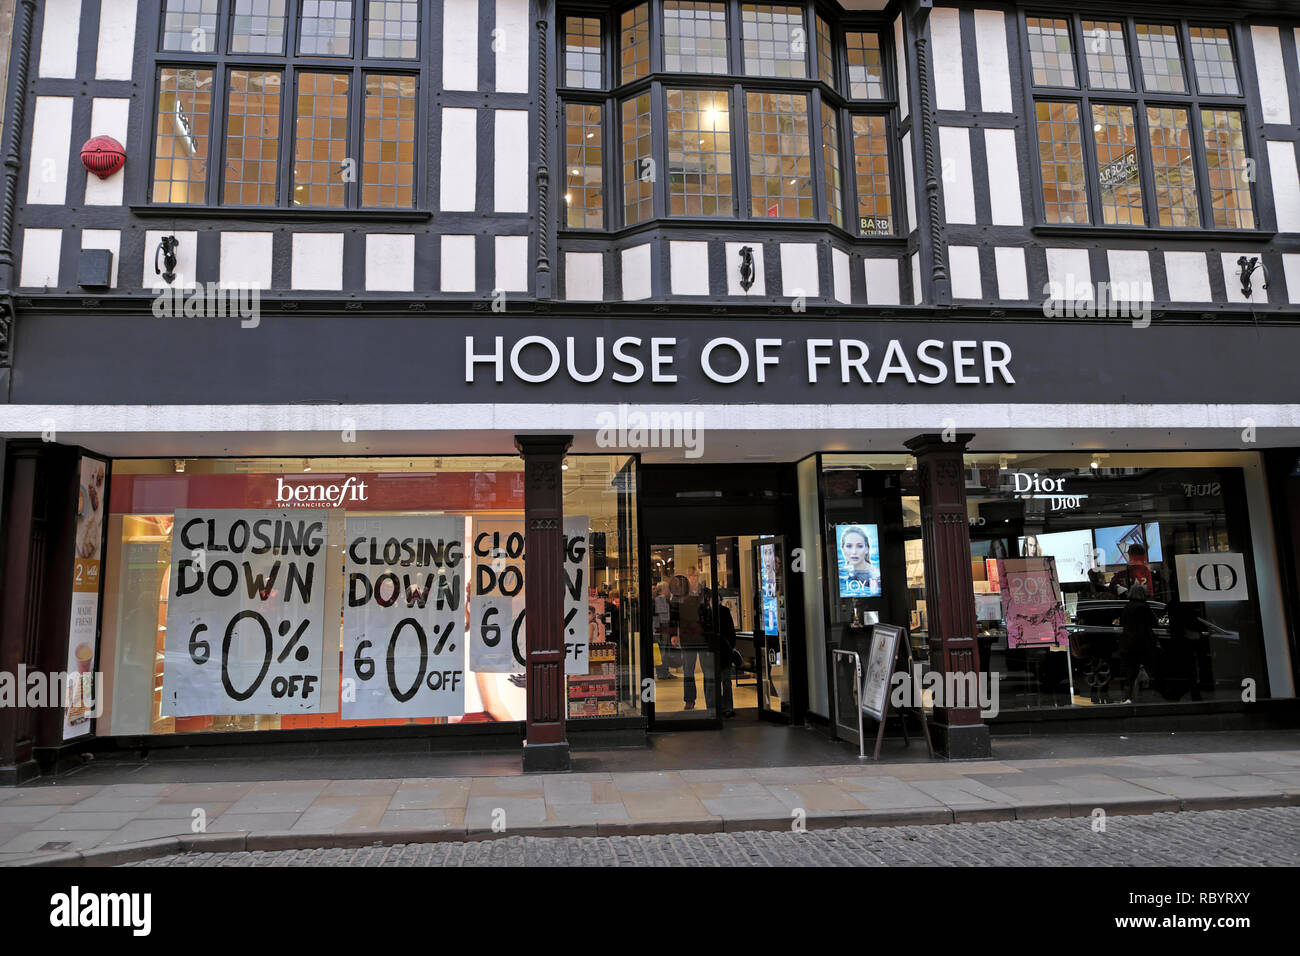 House of Fraser department store in Shrewsbury closing down sale sign in December 2018 Shropshire England UK  KATHY DEWITT - Stock Image